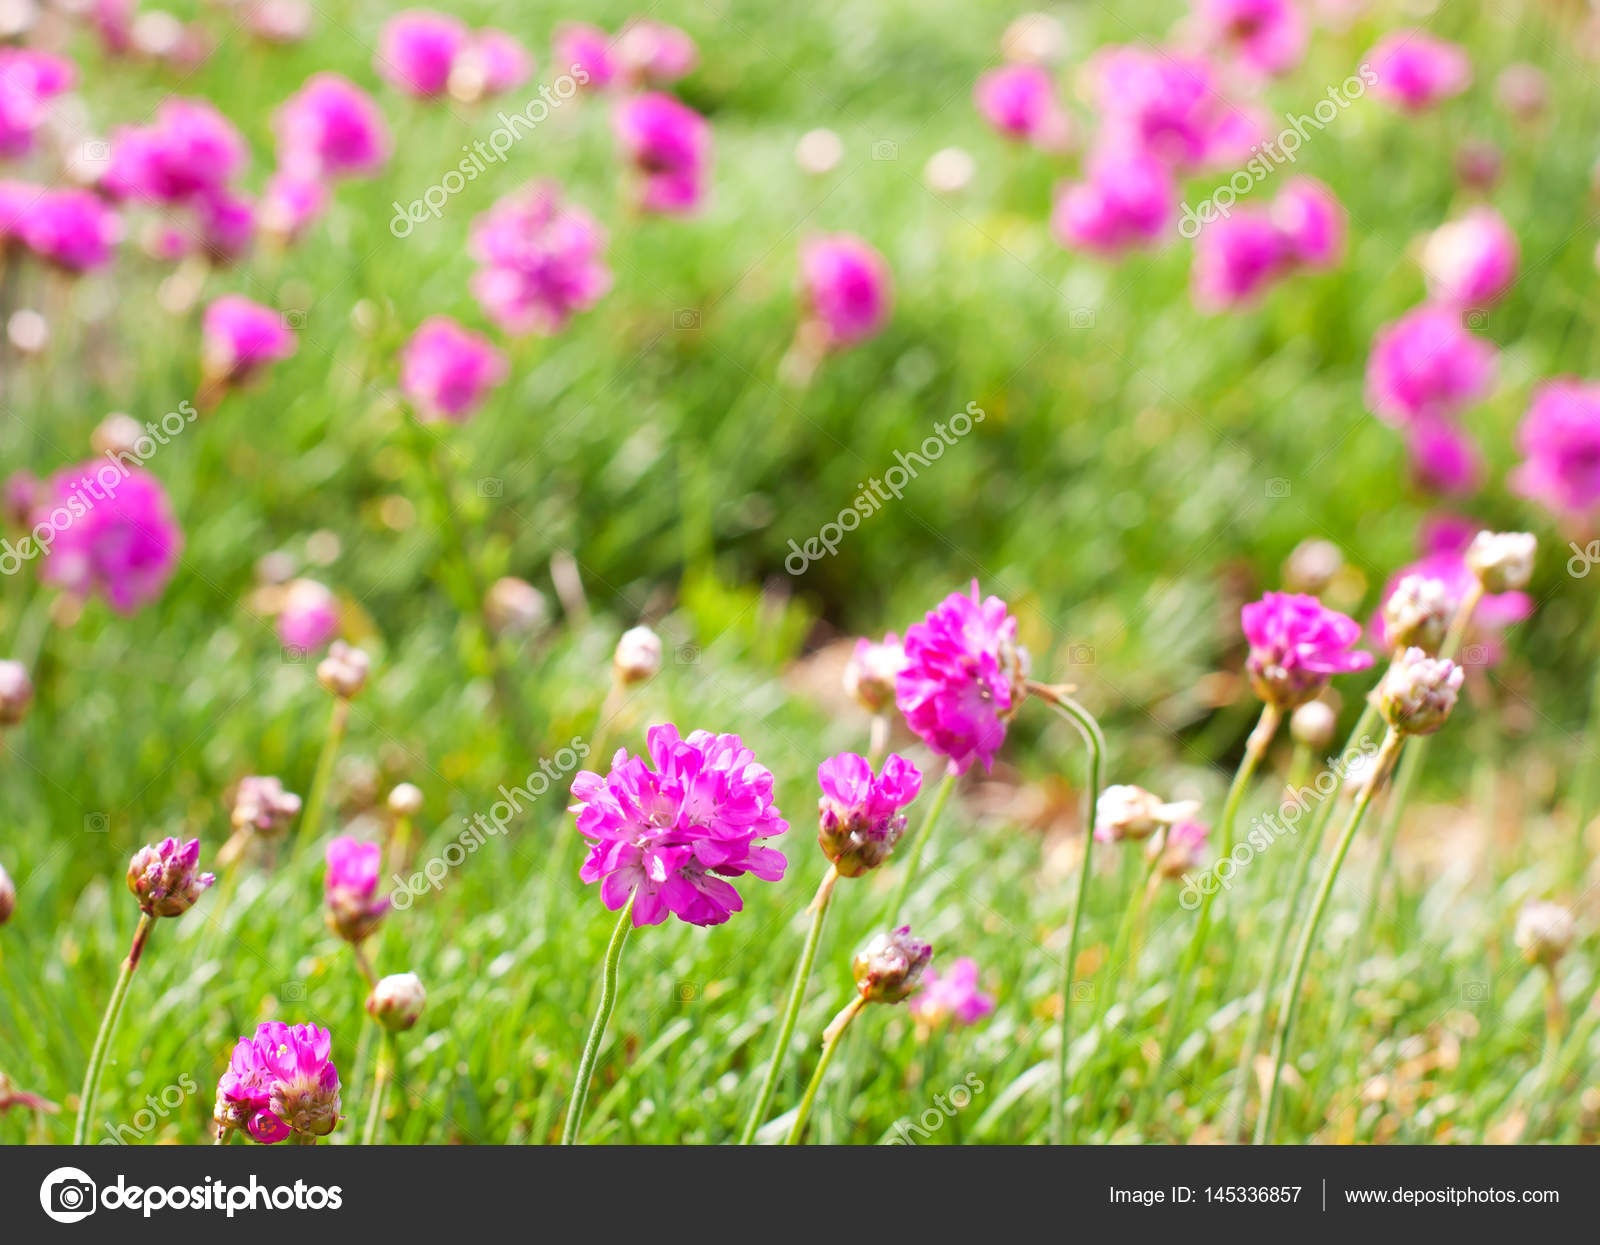 Pink Purple Flowers In The Green Grass Stock Photo Alexmia